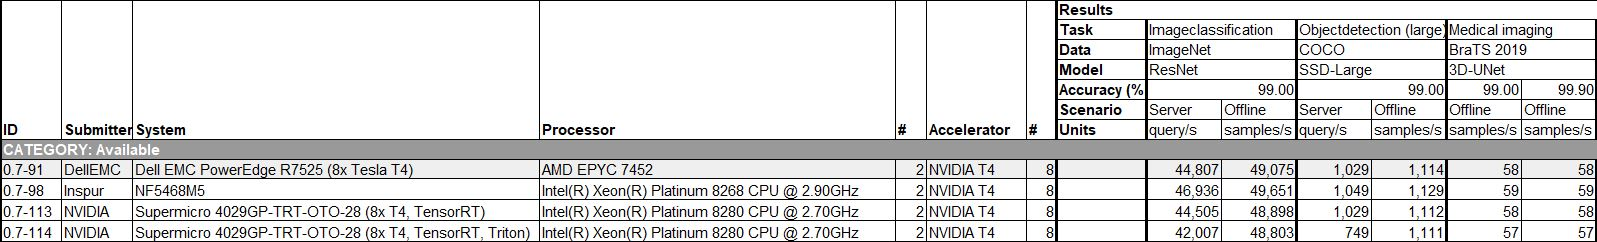 MLPerf 0.7 Inference OEM Comparison 8x NVIDIA T4 Data Center Closed Results Excerpt